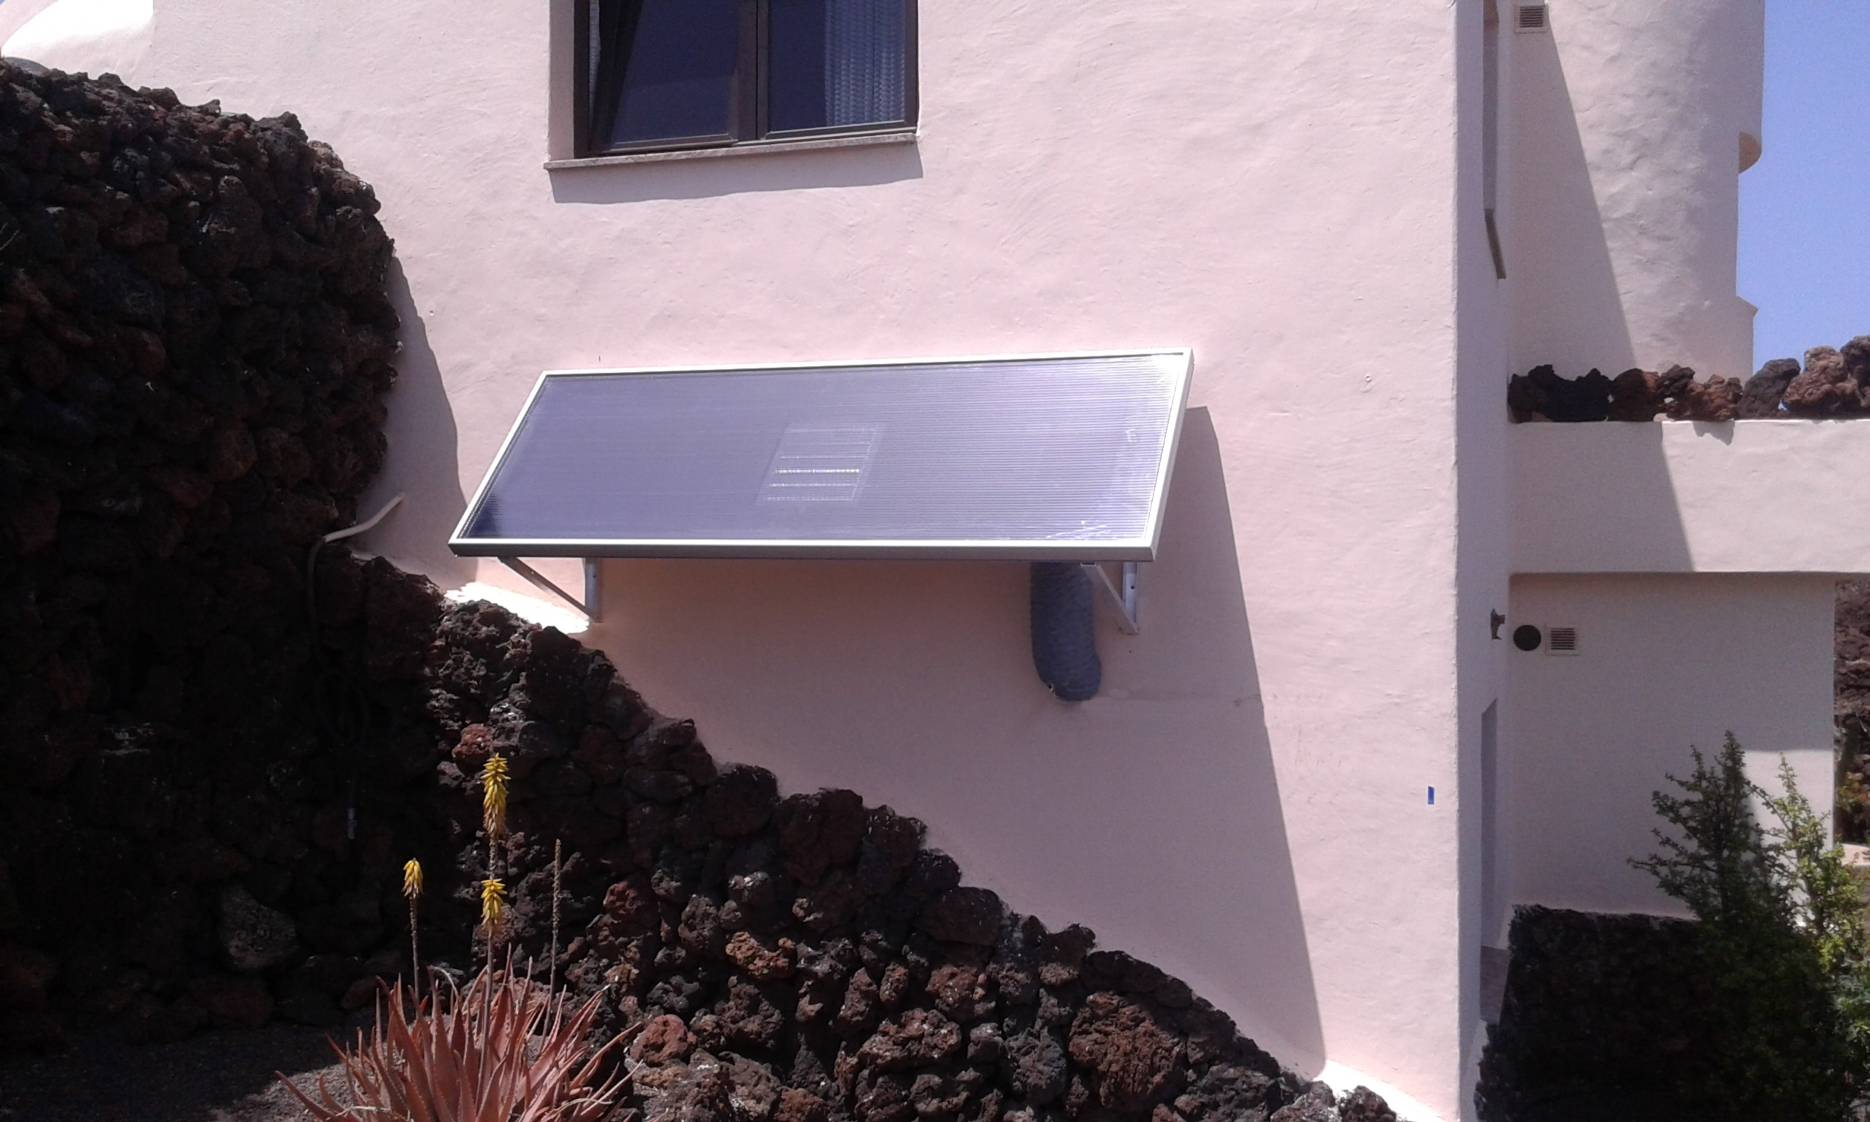 deshumidificacion Lanzarote en pared SolarVenti Entfeuchtung Dehumidification